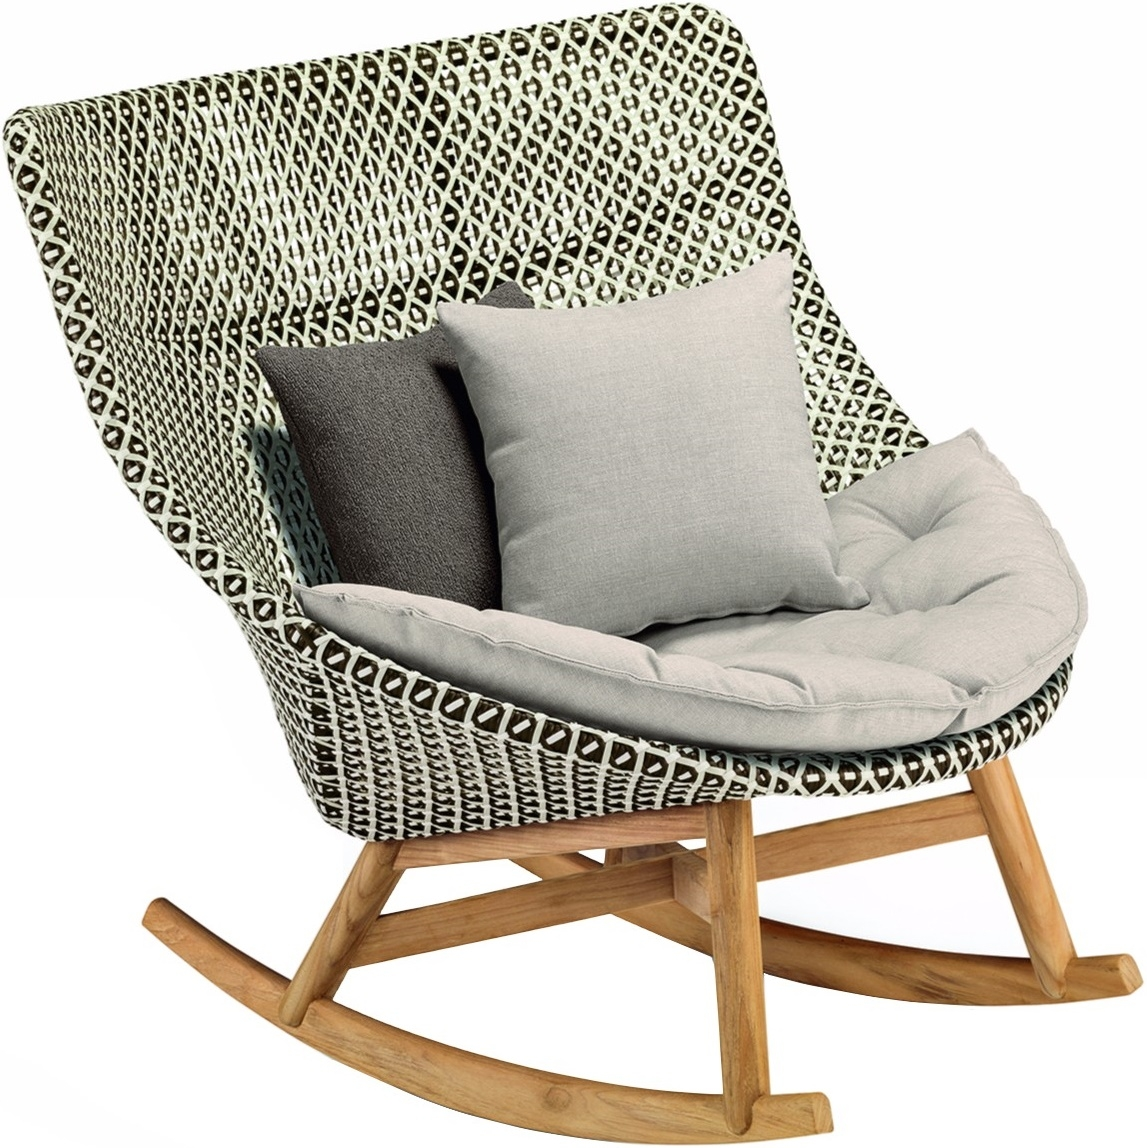 Mbrace Dedon Rocking Chair